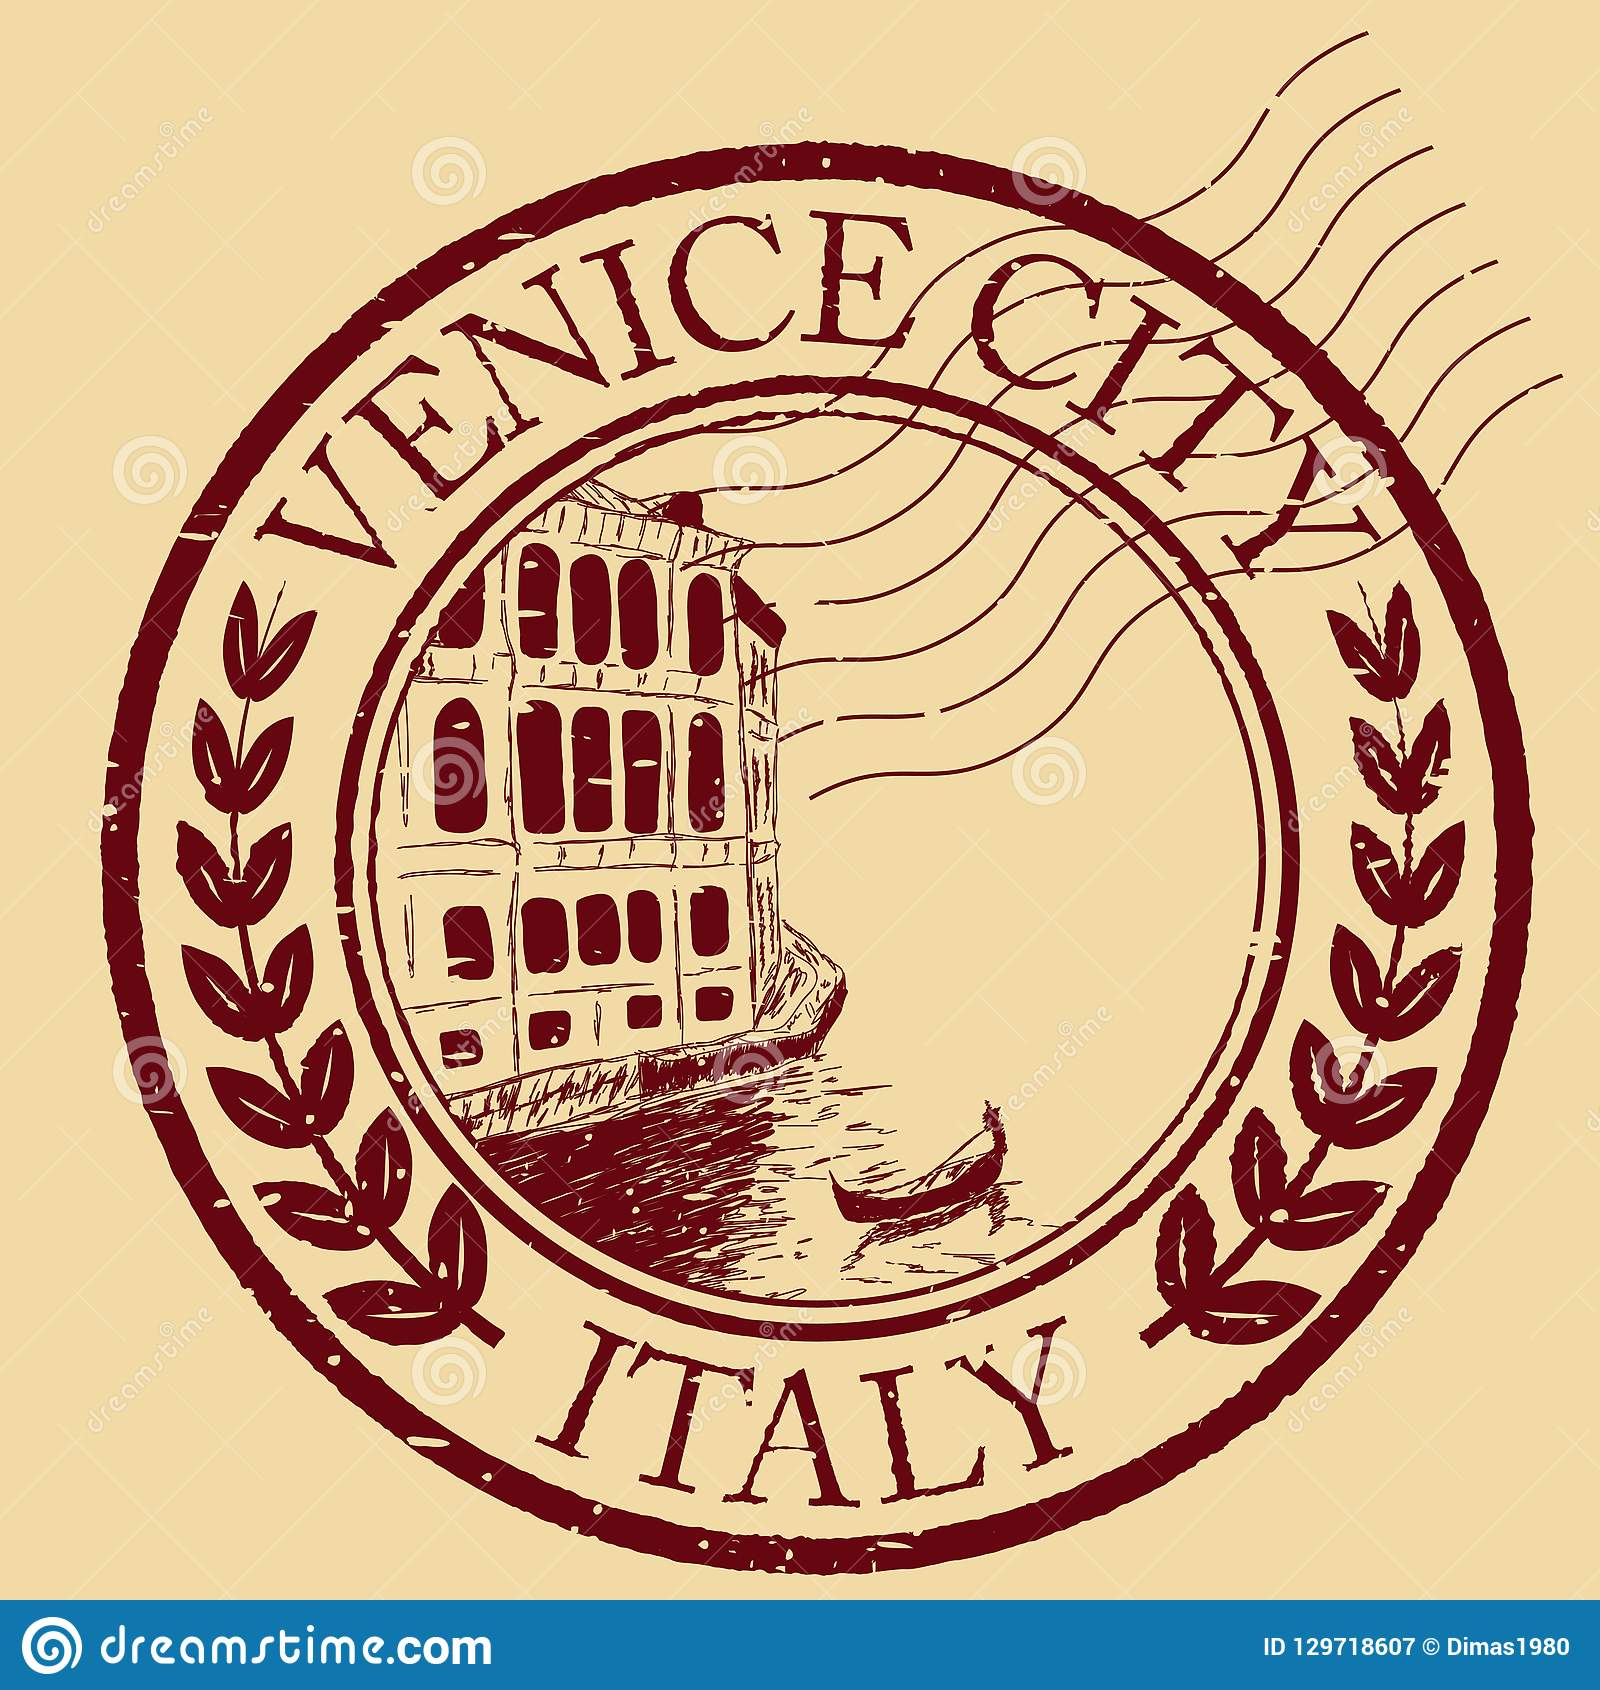 Venice, Italy isolated postage stamp